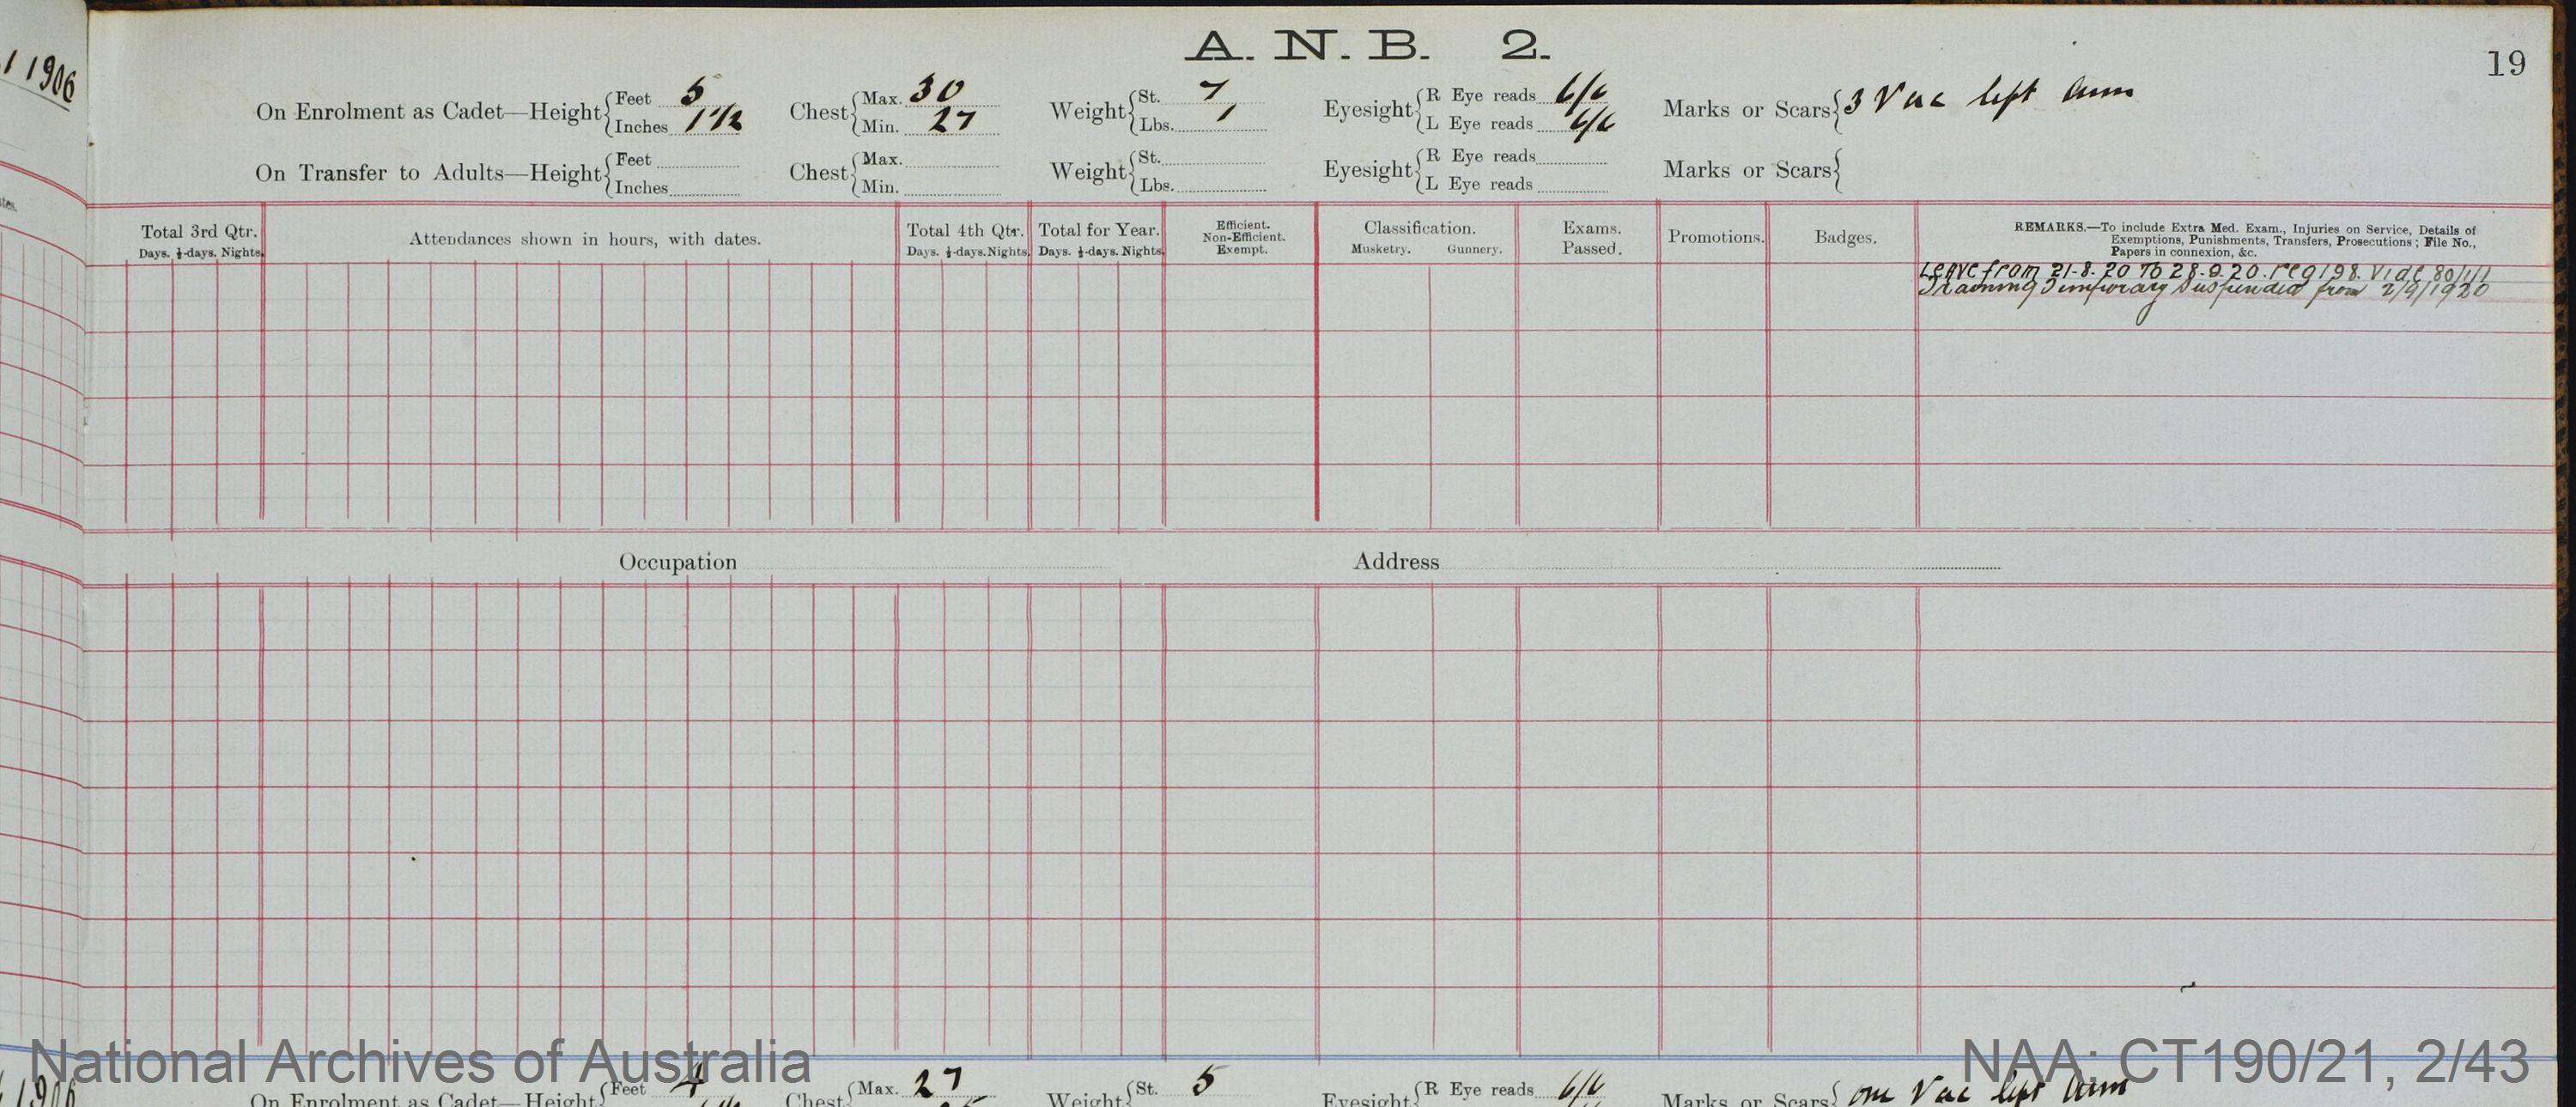 SURNAME - VANCE;  GIVEN NAME(S) - Allan;  OFFICIAL NUMBER - 333;  DATE OF BIRTH - 29 January 1906;  PLACE OF BIRTH - [Unknown];  NEXT OF KIN - [Unknown] ;  SERVICE/STATION - Port Fairy;  REGISTRATION DATE - 2 February 1920